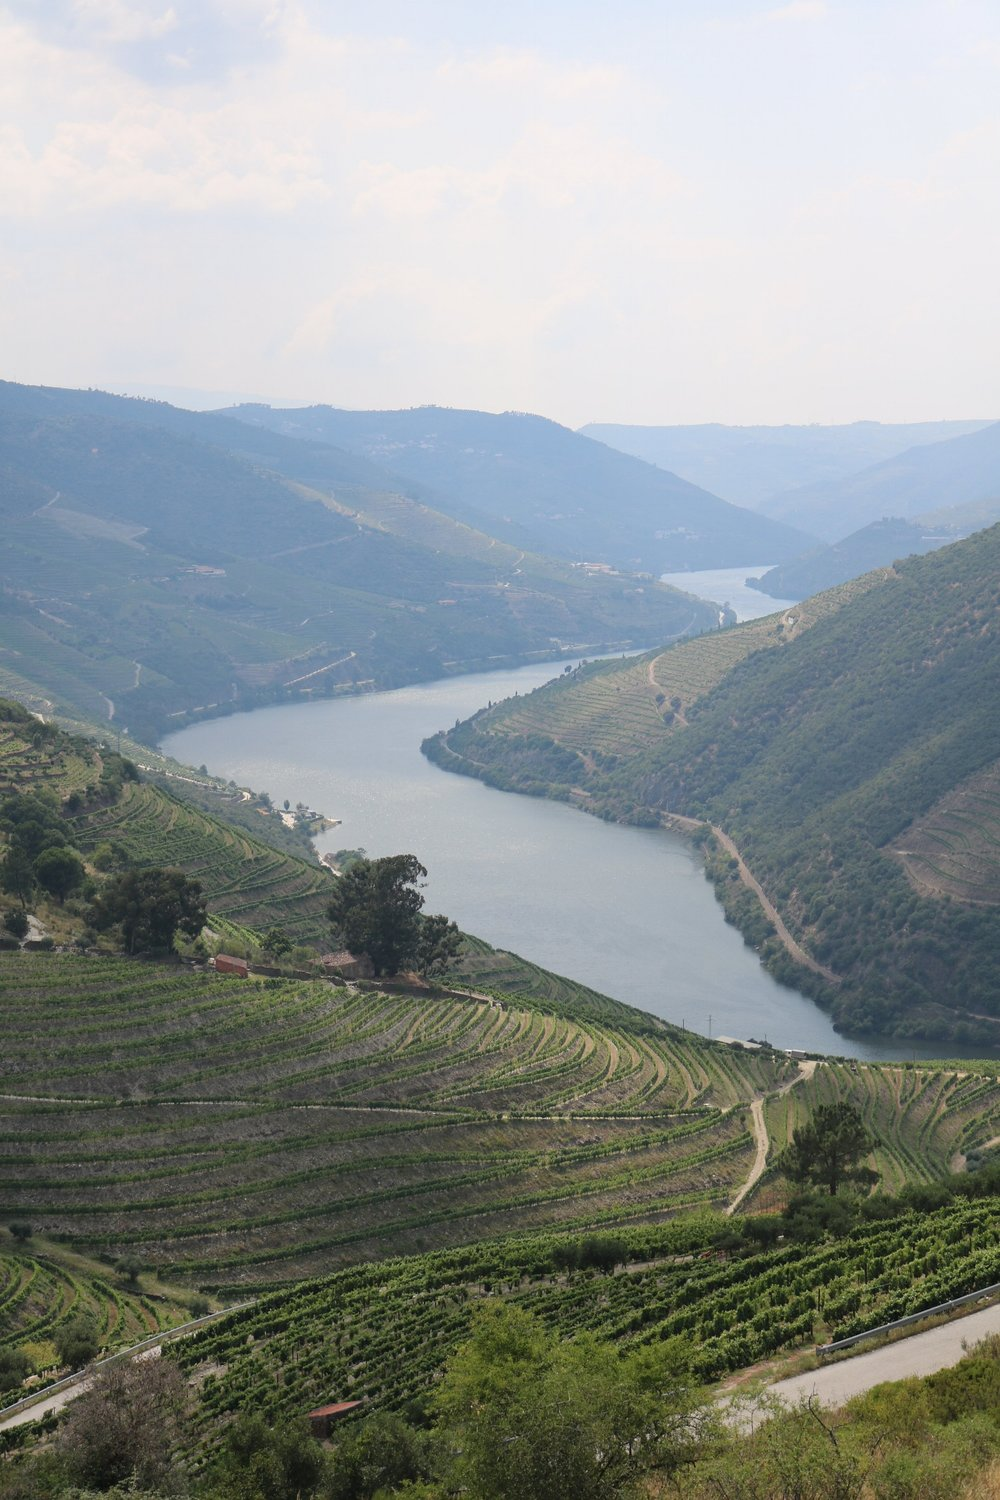 The Douro Wine Region in Northern Portugal